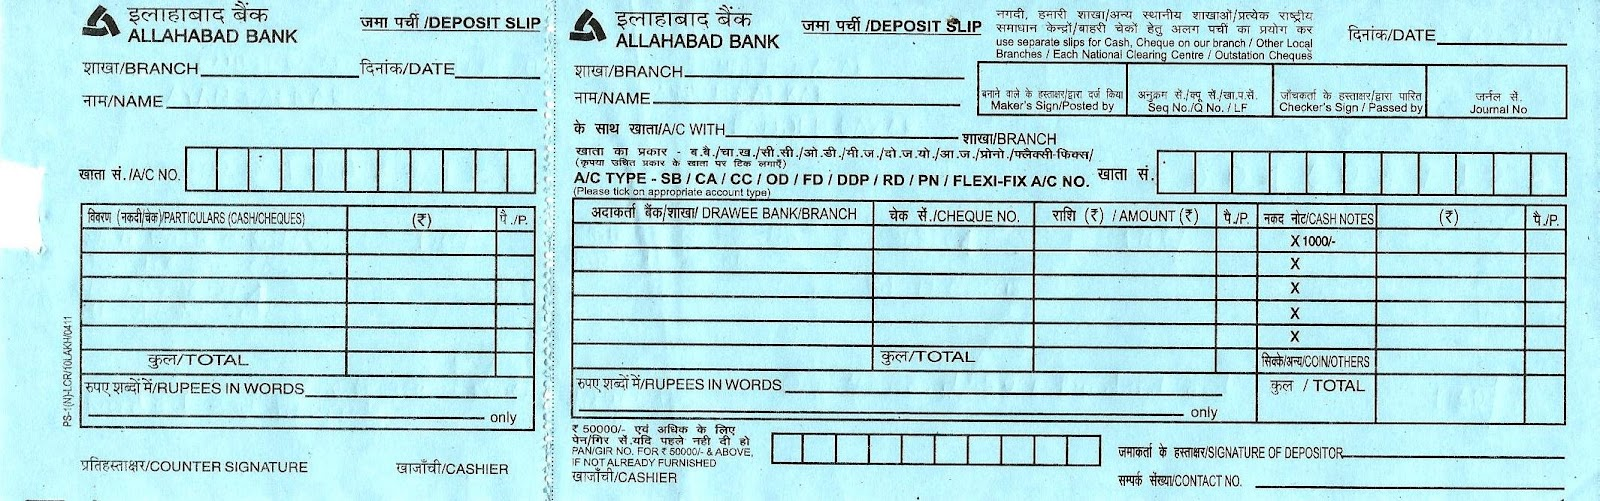 Marvelous Indian Bank Pay In Slips For Cash/Instrument Depositions On Pay In Slips